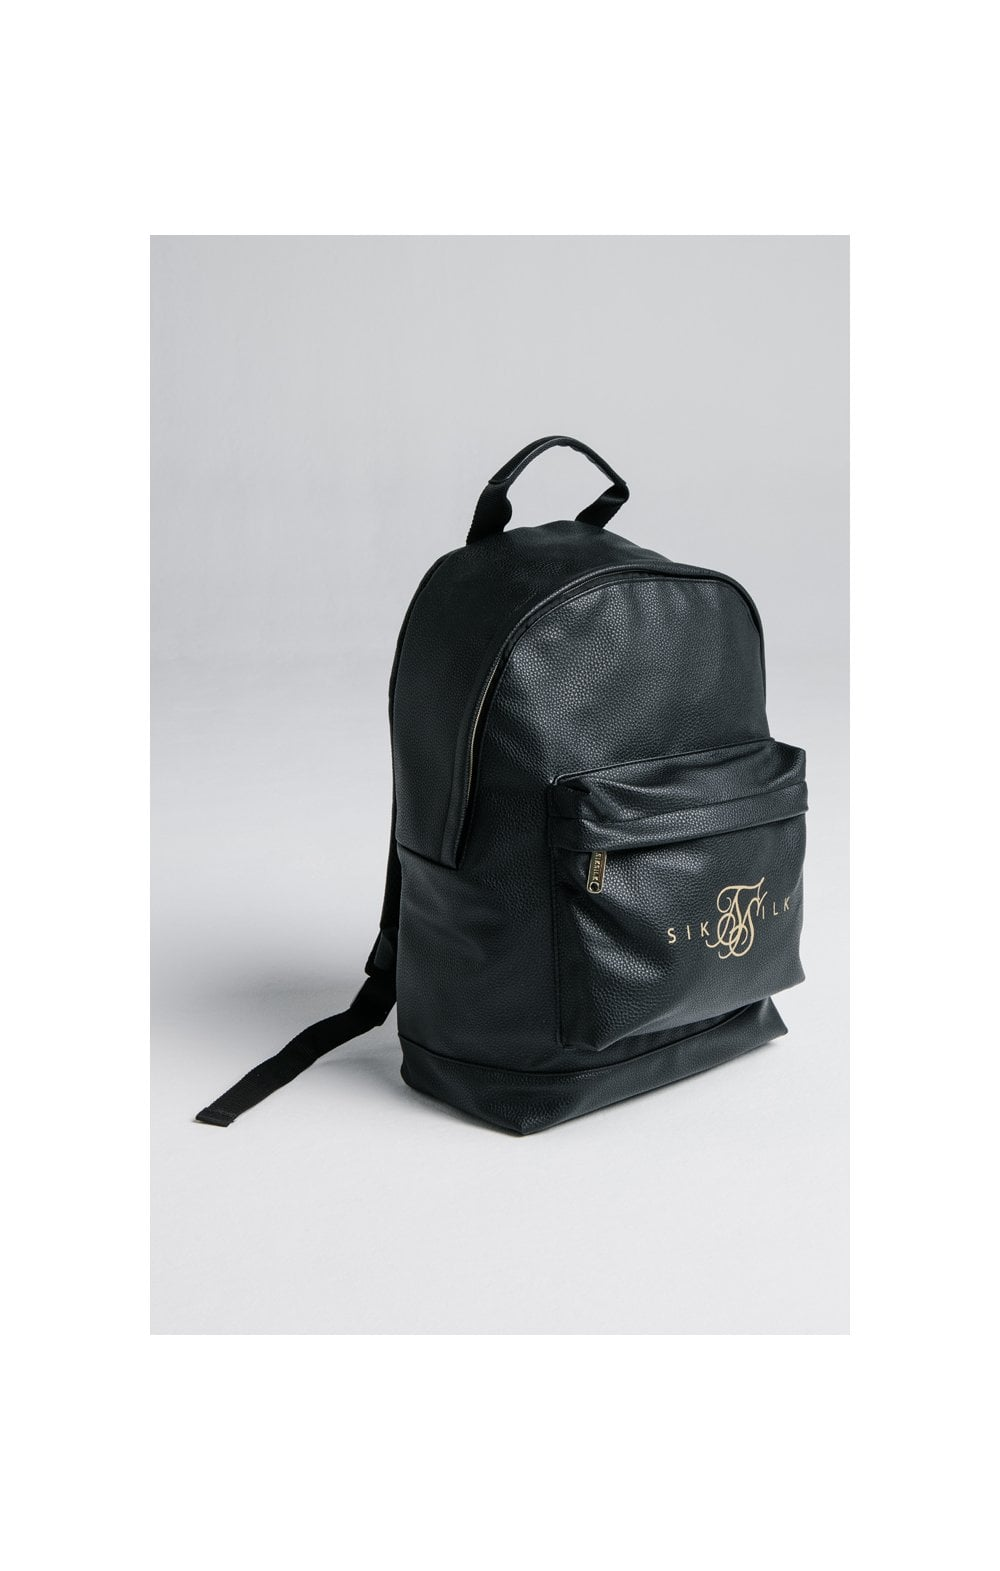 SikSilk Backpack - Black (1)